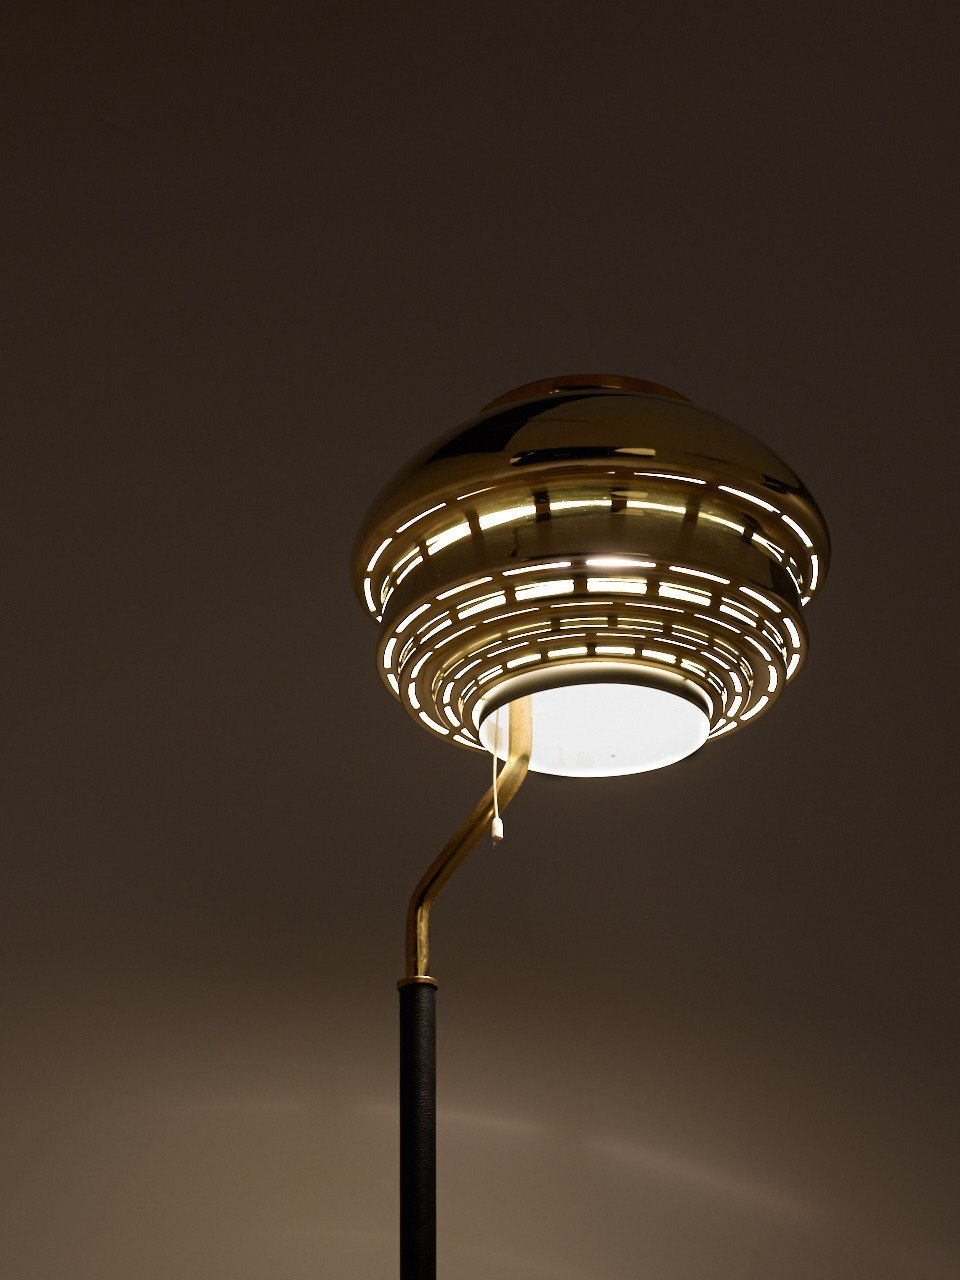 Early Alvar Aalto Floor Lamp Model A808 by Valaistustyö Ky 1950s